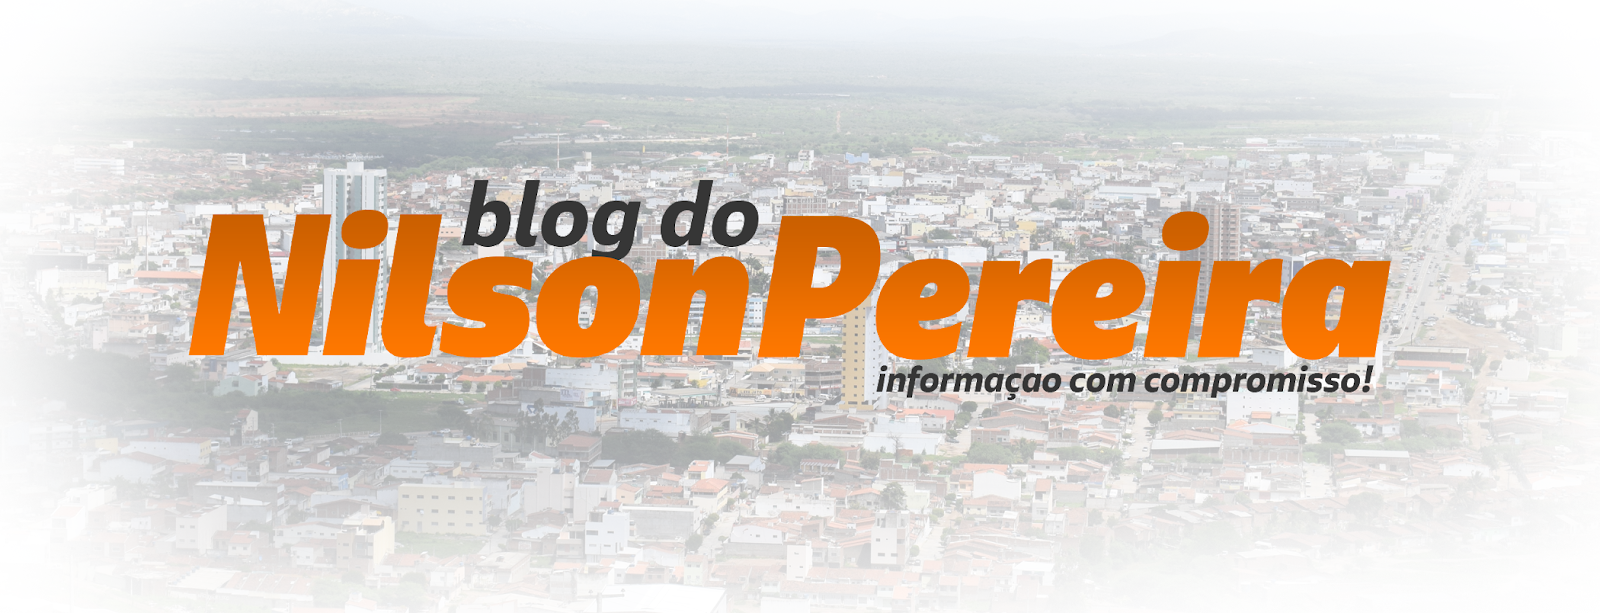 Blog do Nilson Pereira